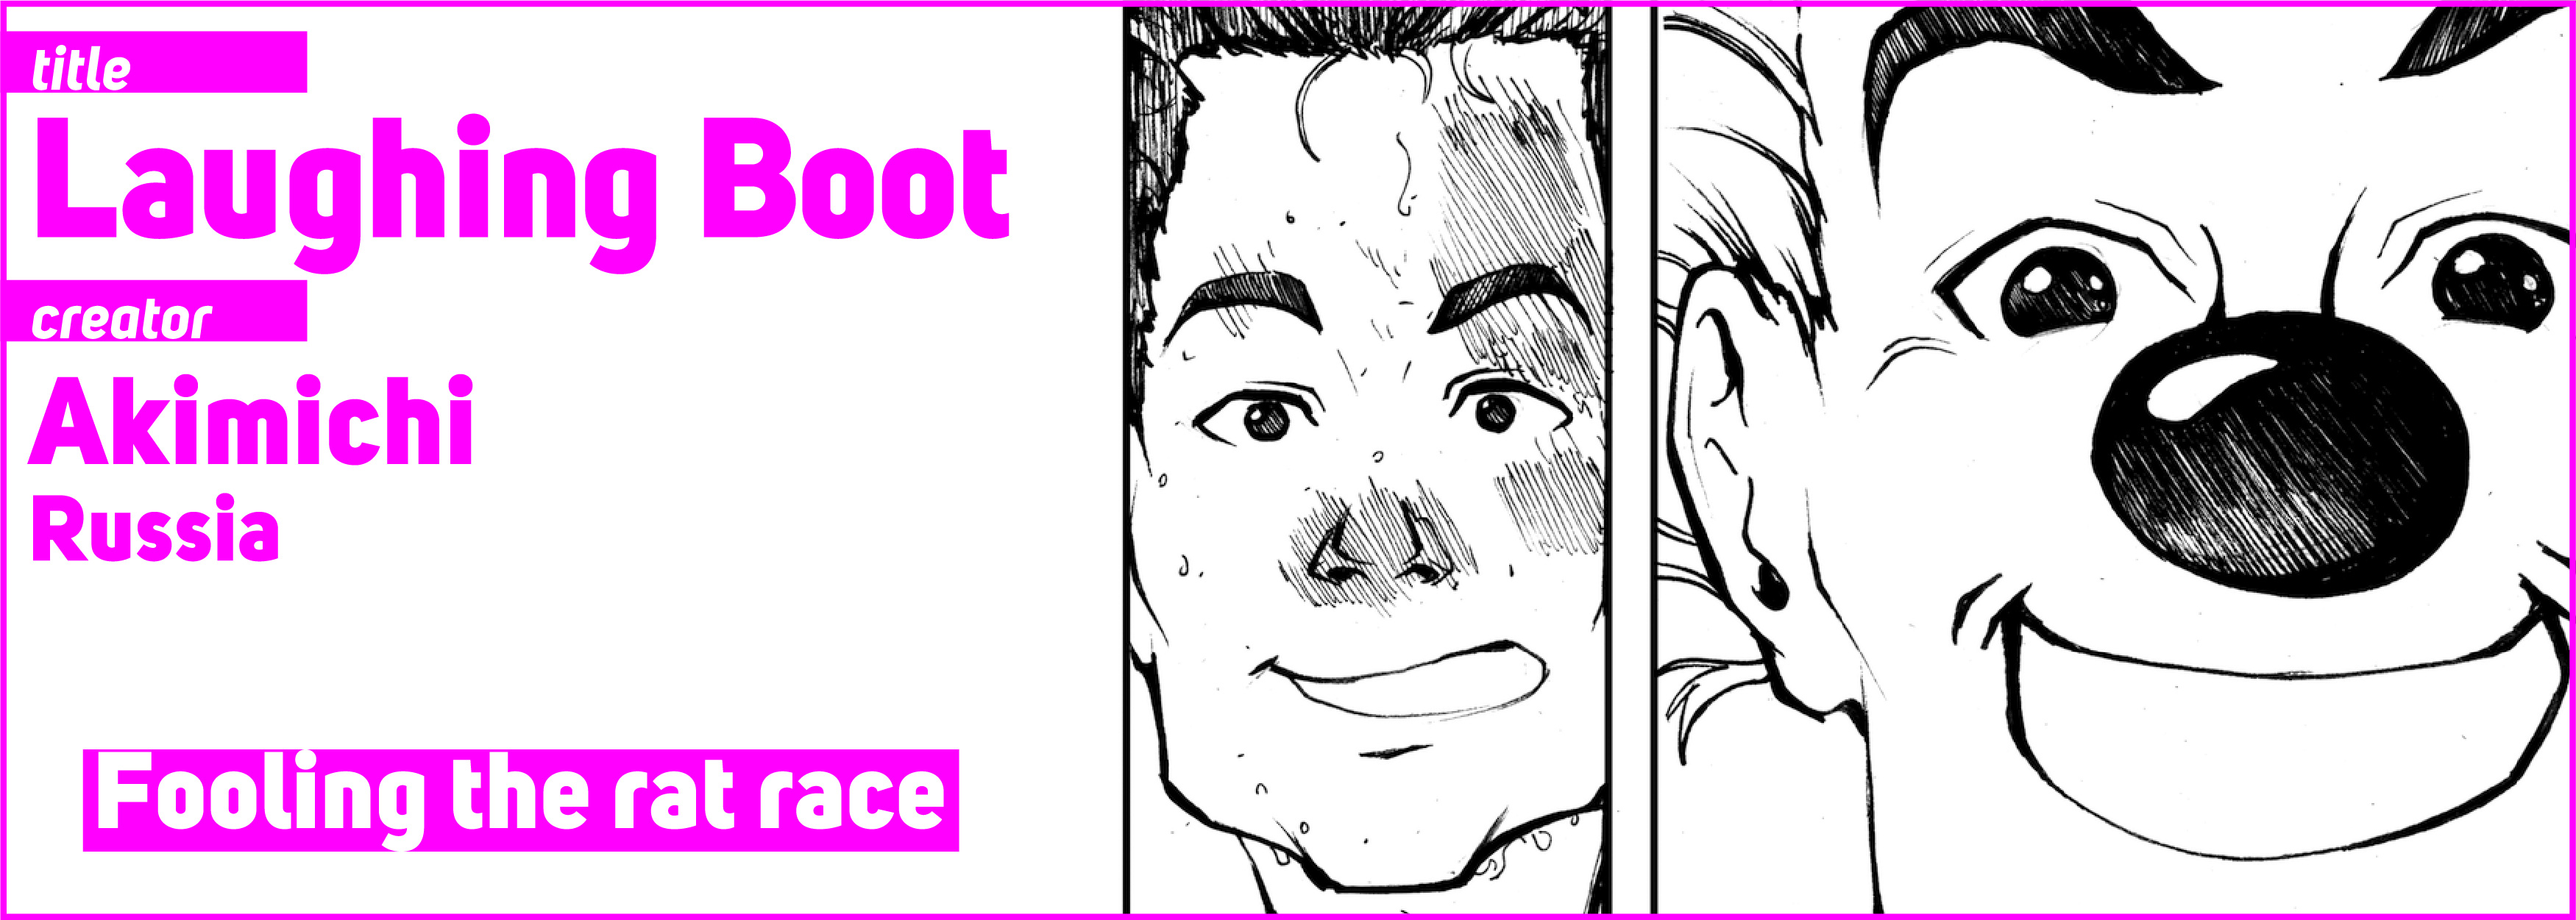 Laughing Boot